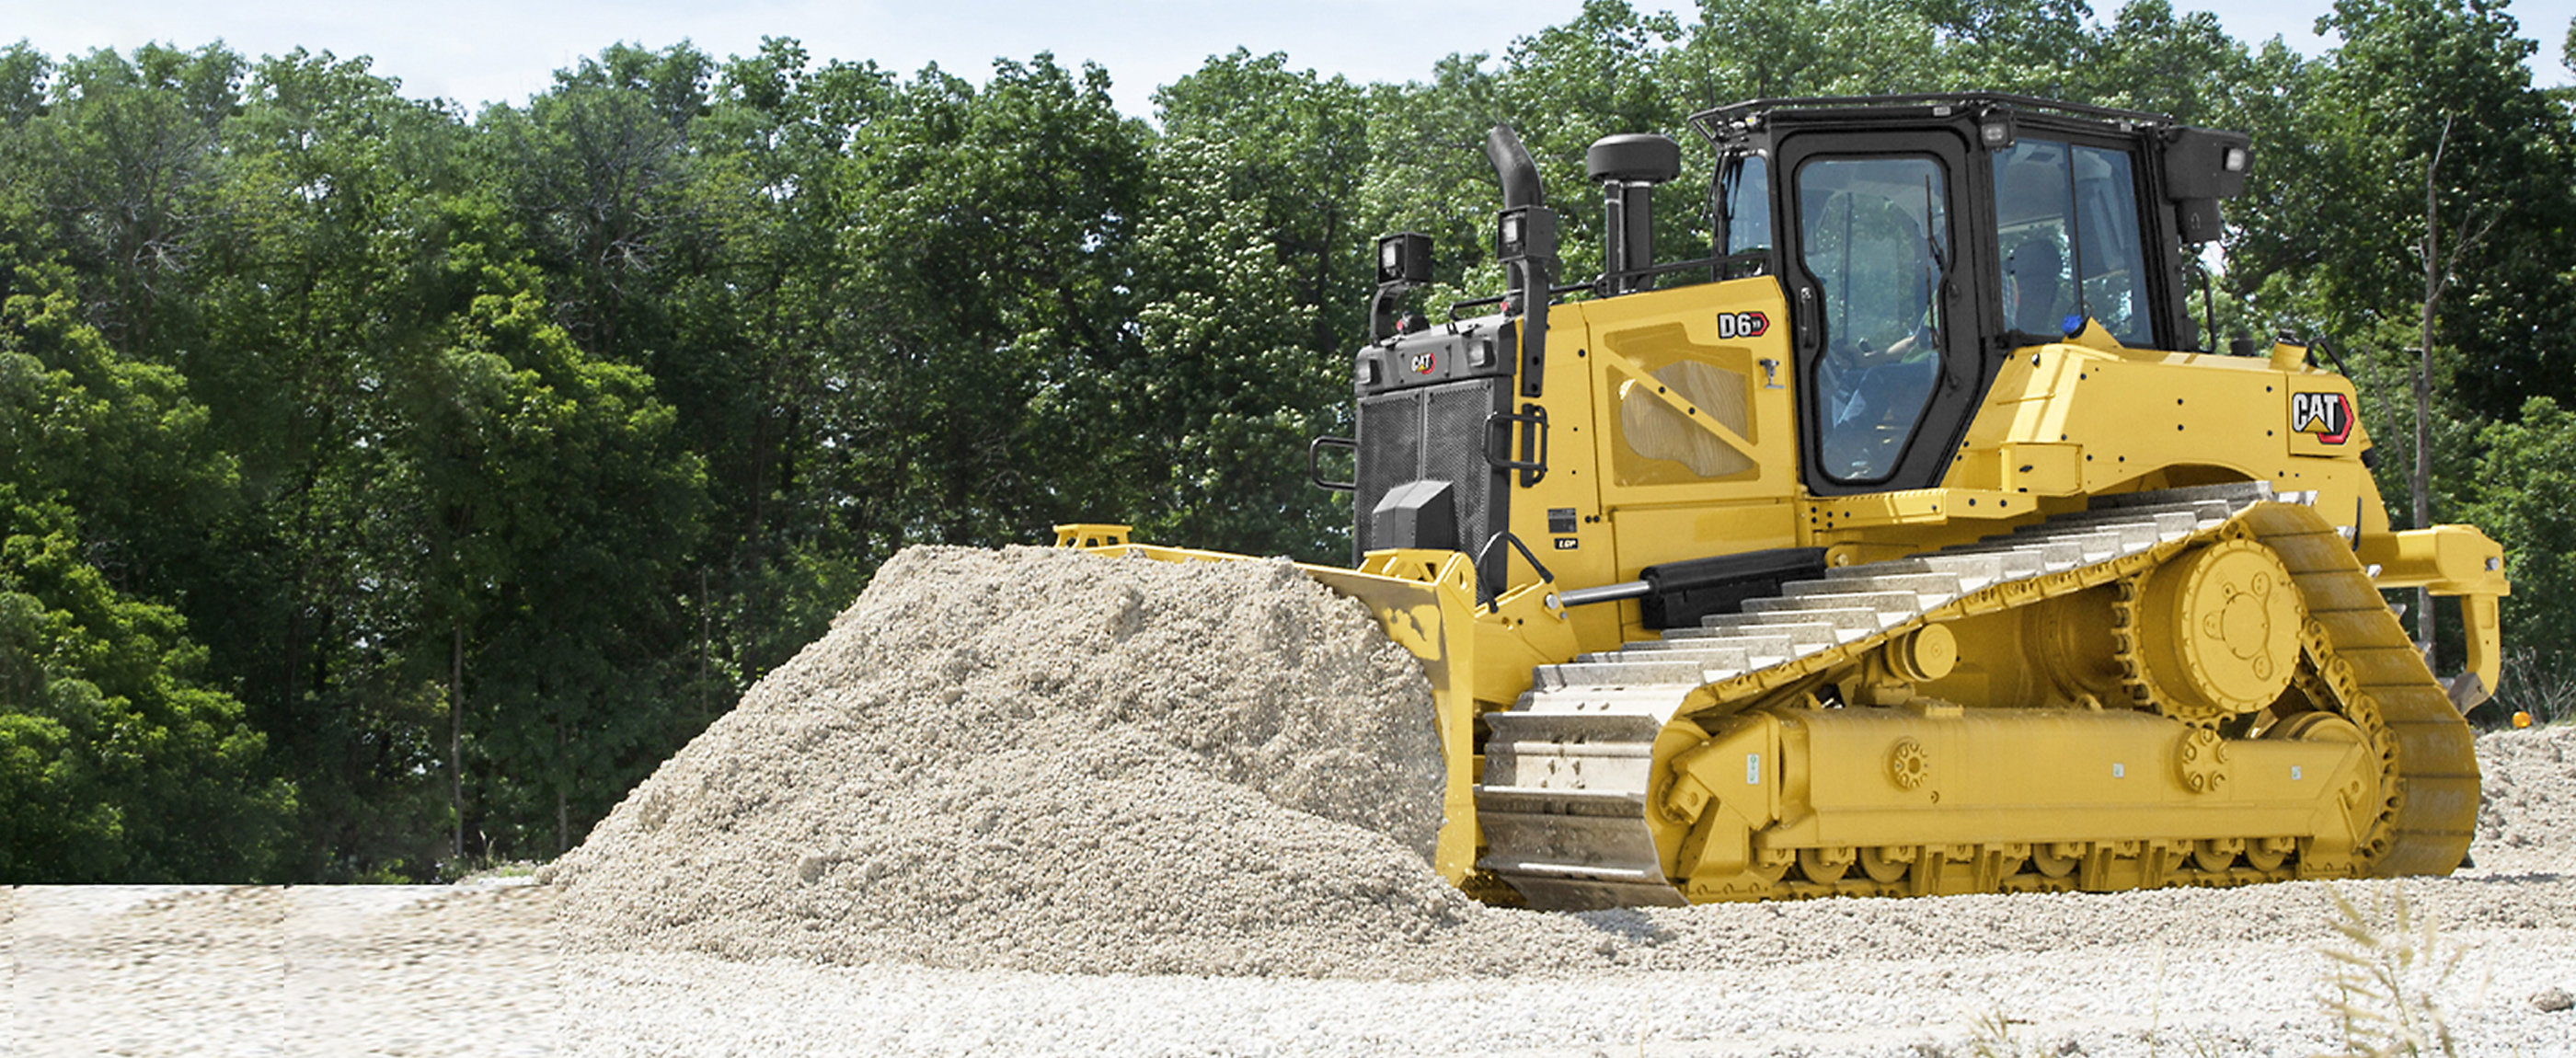 Cat® dozers move more material in less time.